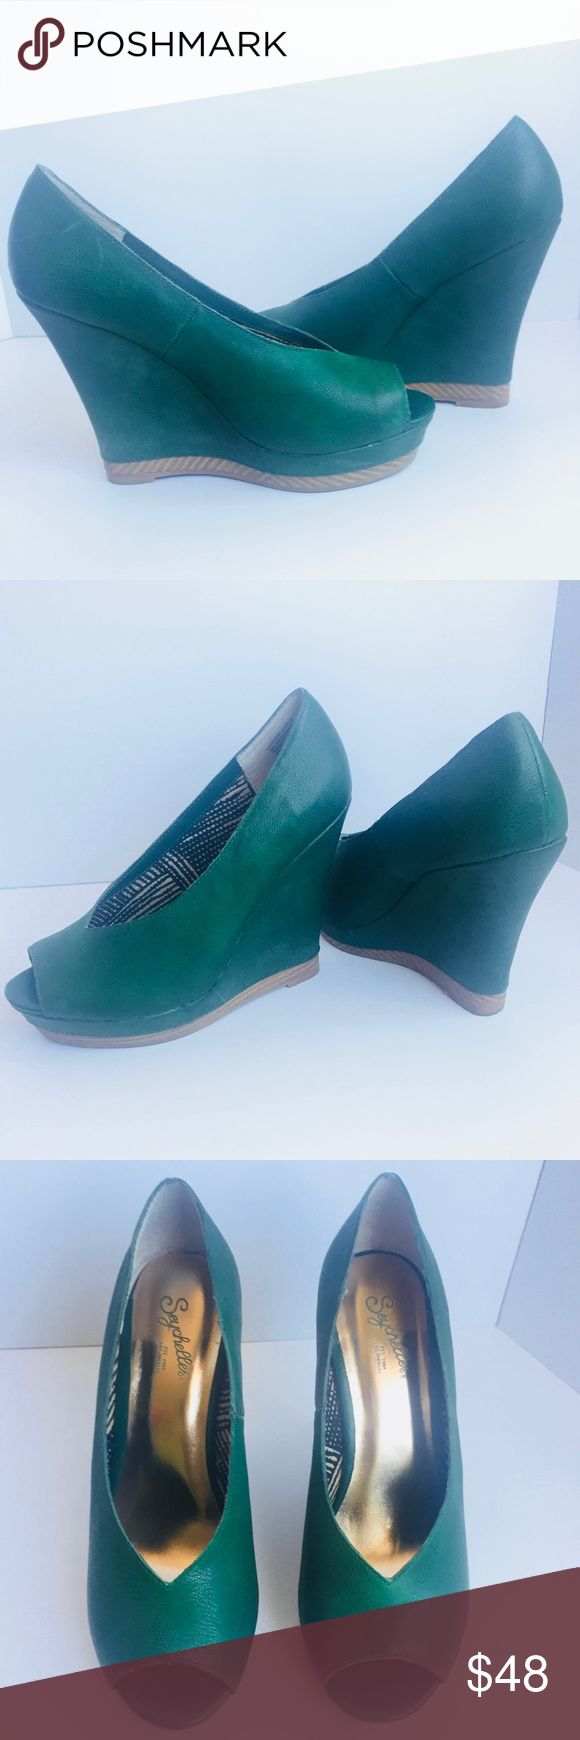 ✨SUNDAY SALE✨Seychelles Green Wedge with Peep Toe Seychelles Green Wedge with Peep Toe.  Extremely comfortable for long term wear.  Excellent condition and worn one time.  Heel height 4-inches with 1-inch platform. Seychelles Shoes Wedges